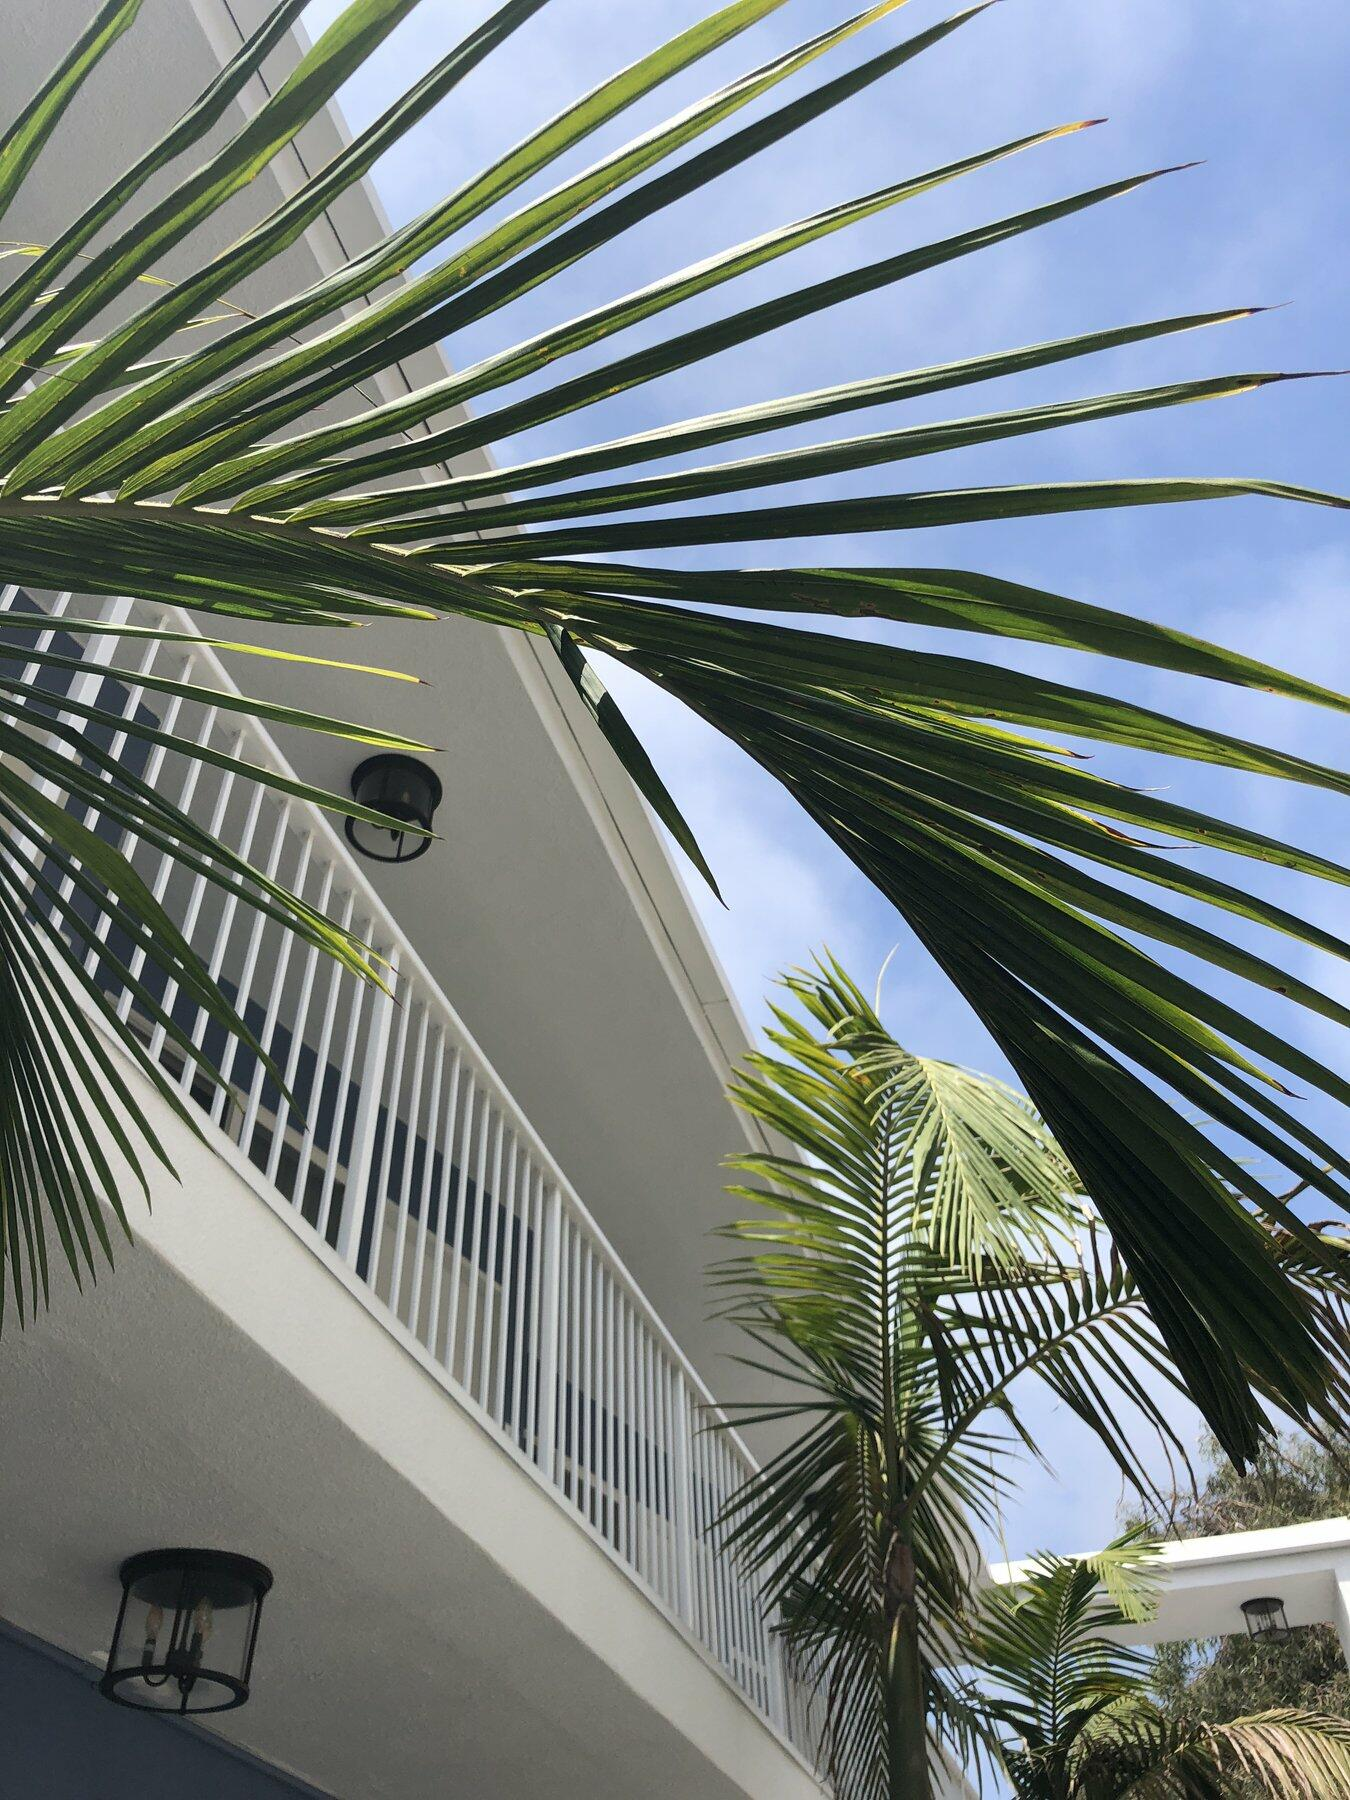 Photo of hotel balcony with palm trees